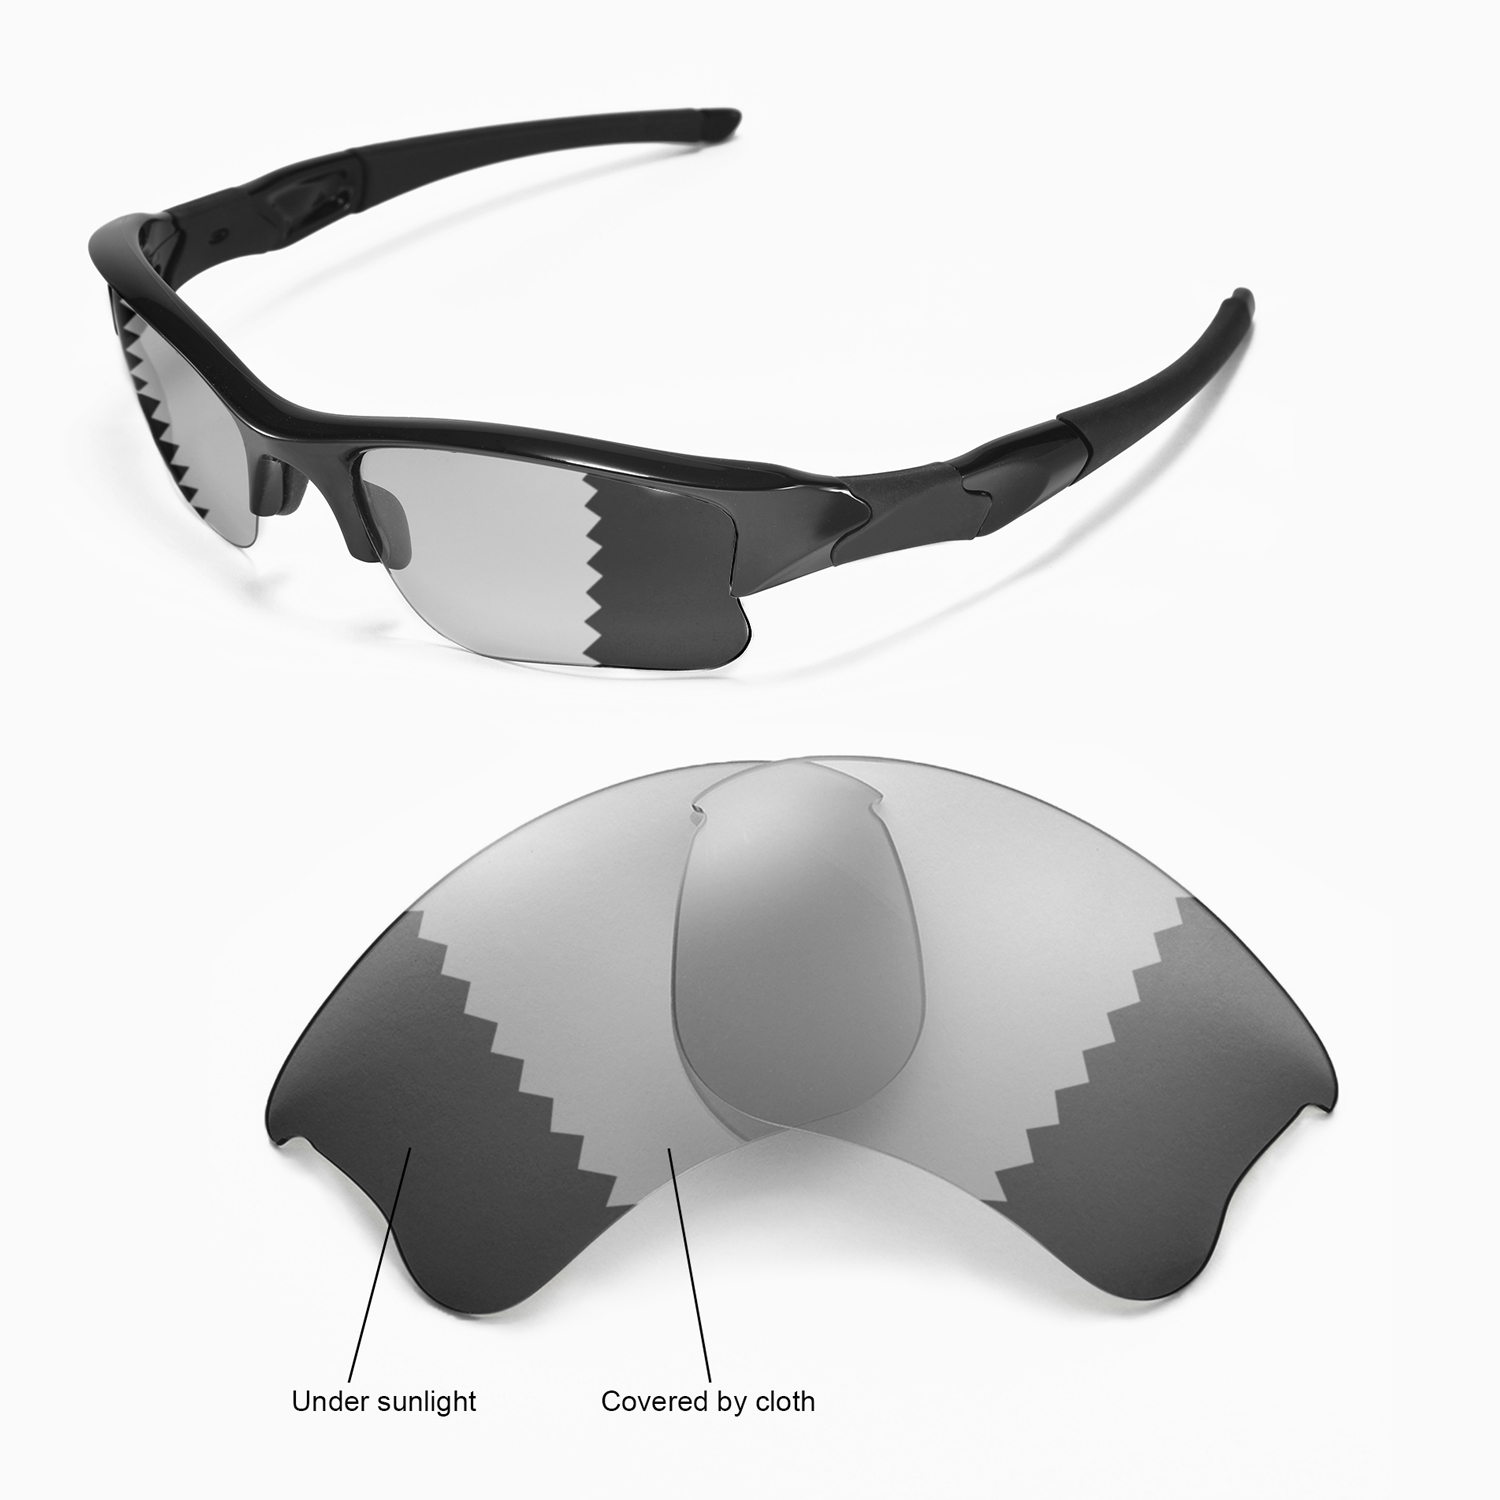 659373b63b2 Details about New Walleva Polarized Transition Photochromic Lenses For Oakley  Flak Jacket XLJ